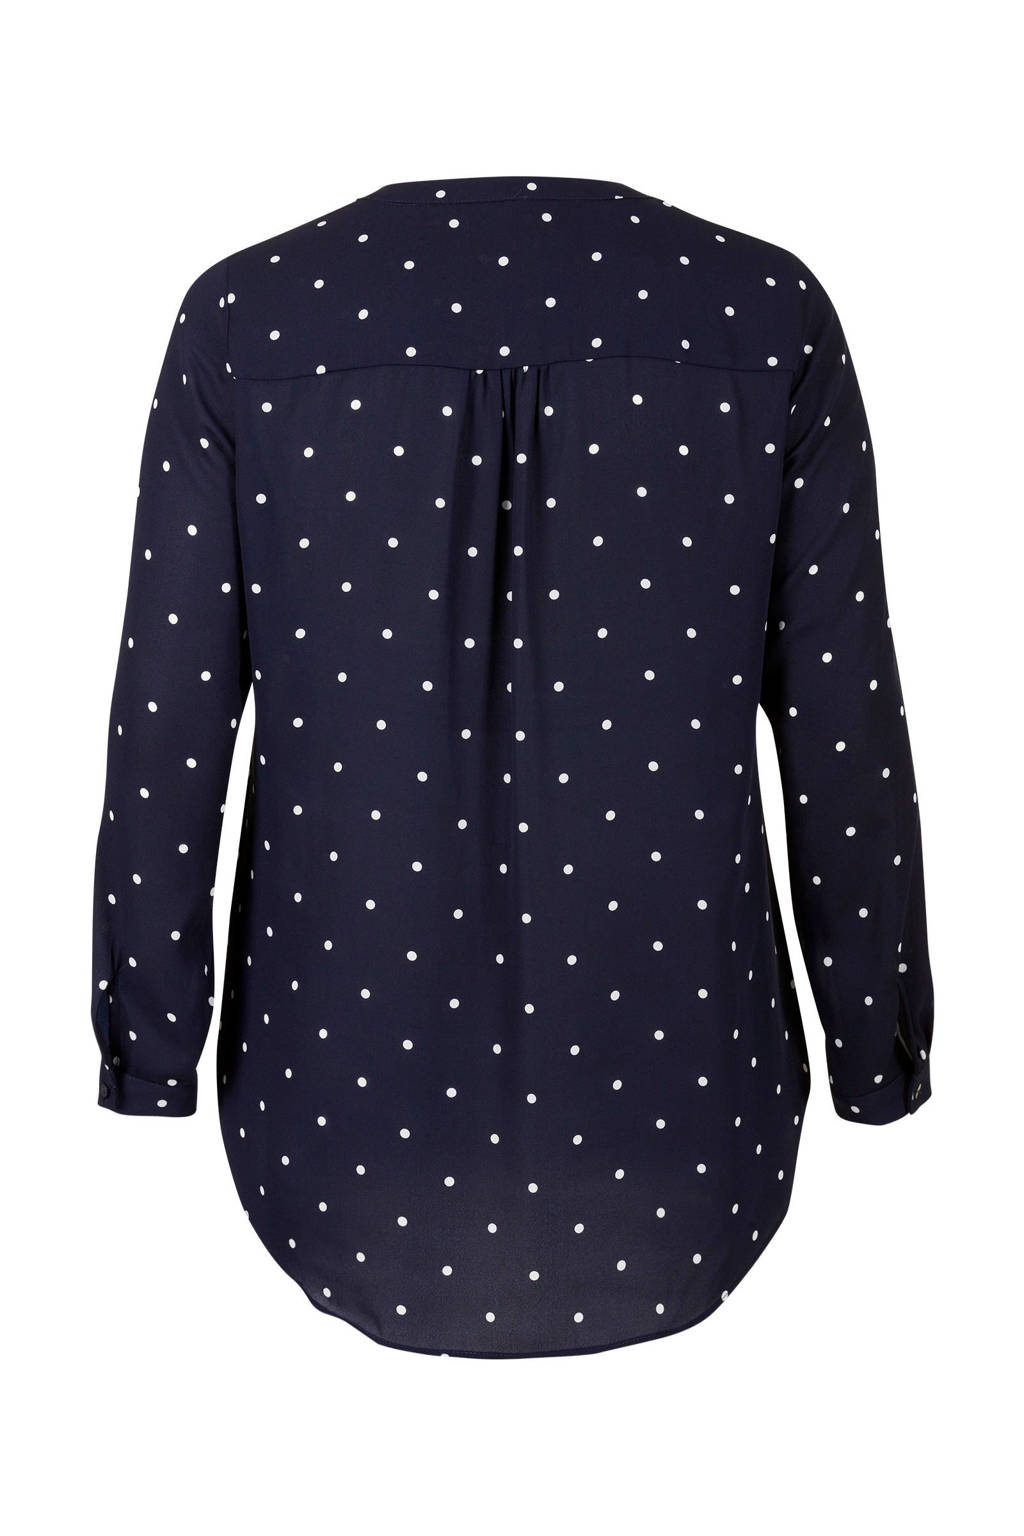 Miss Etam Plus gestipte top, Donkerblauw/wit